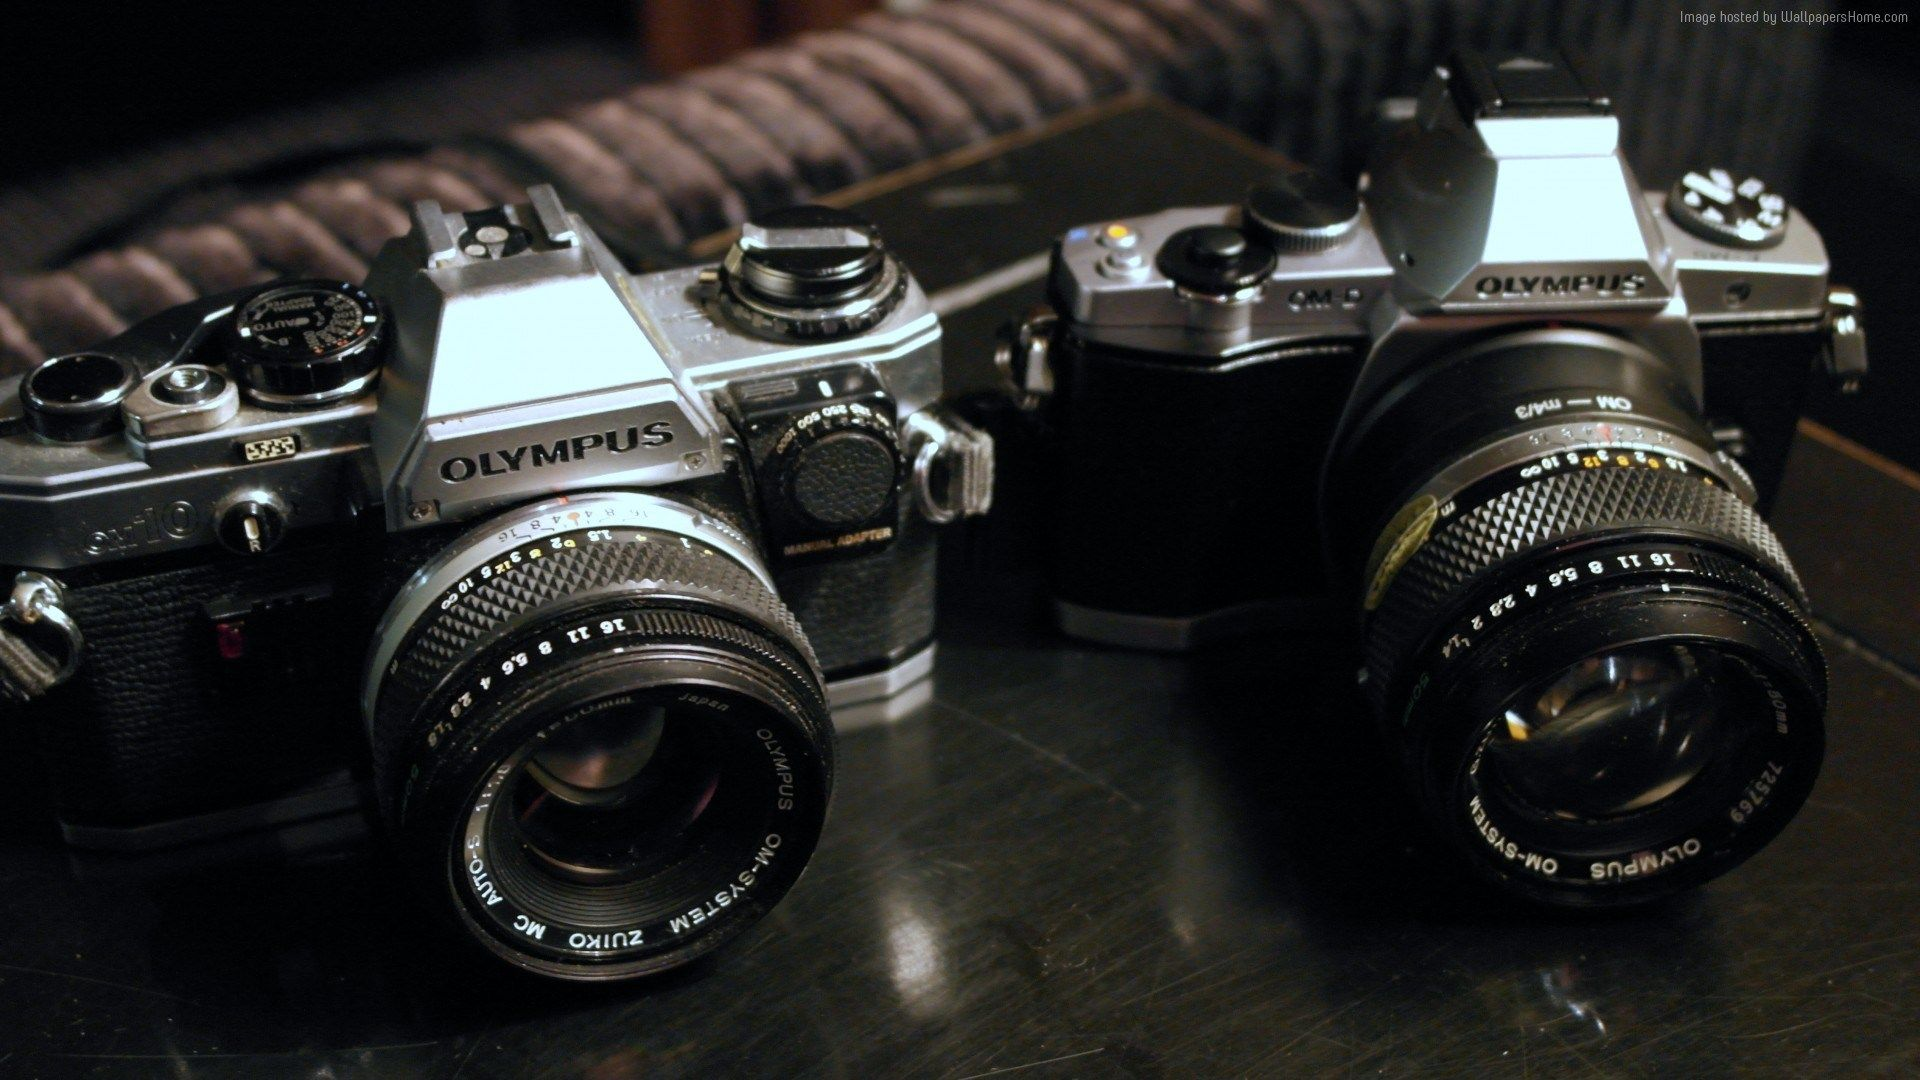 olympus om d e m5 mkii wallpaper hi tech | Camera film | Pinterest